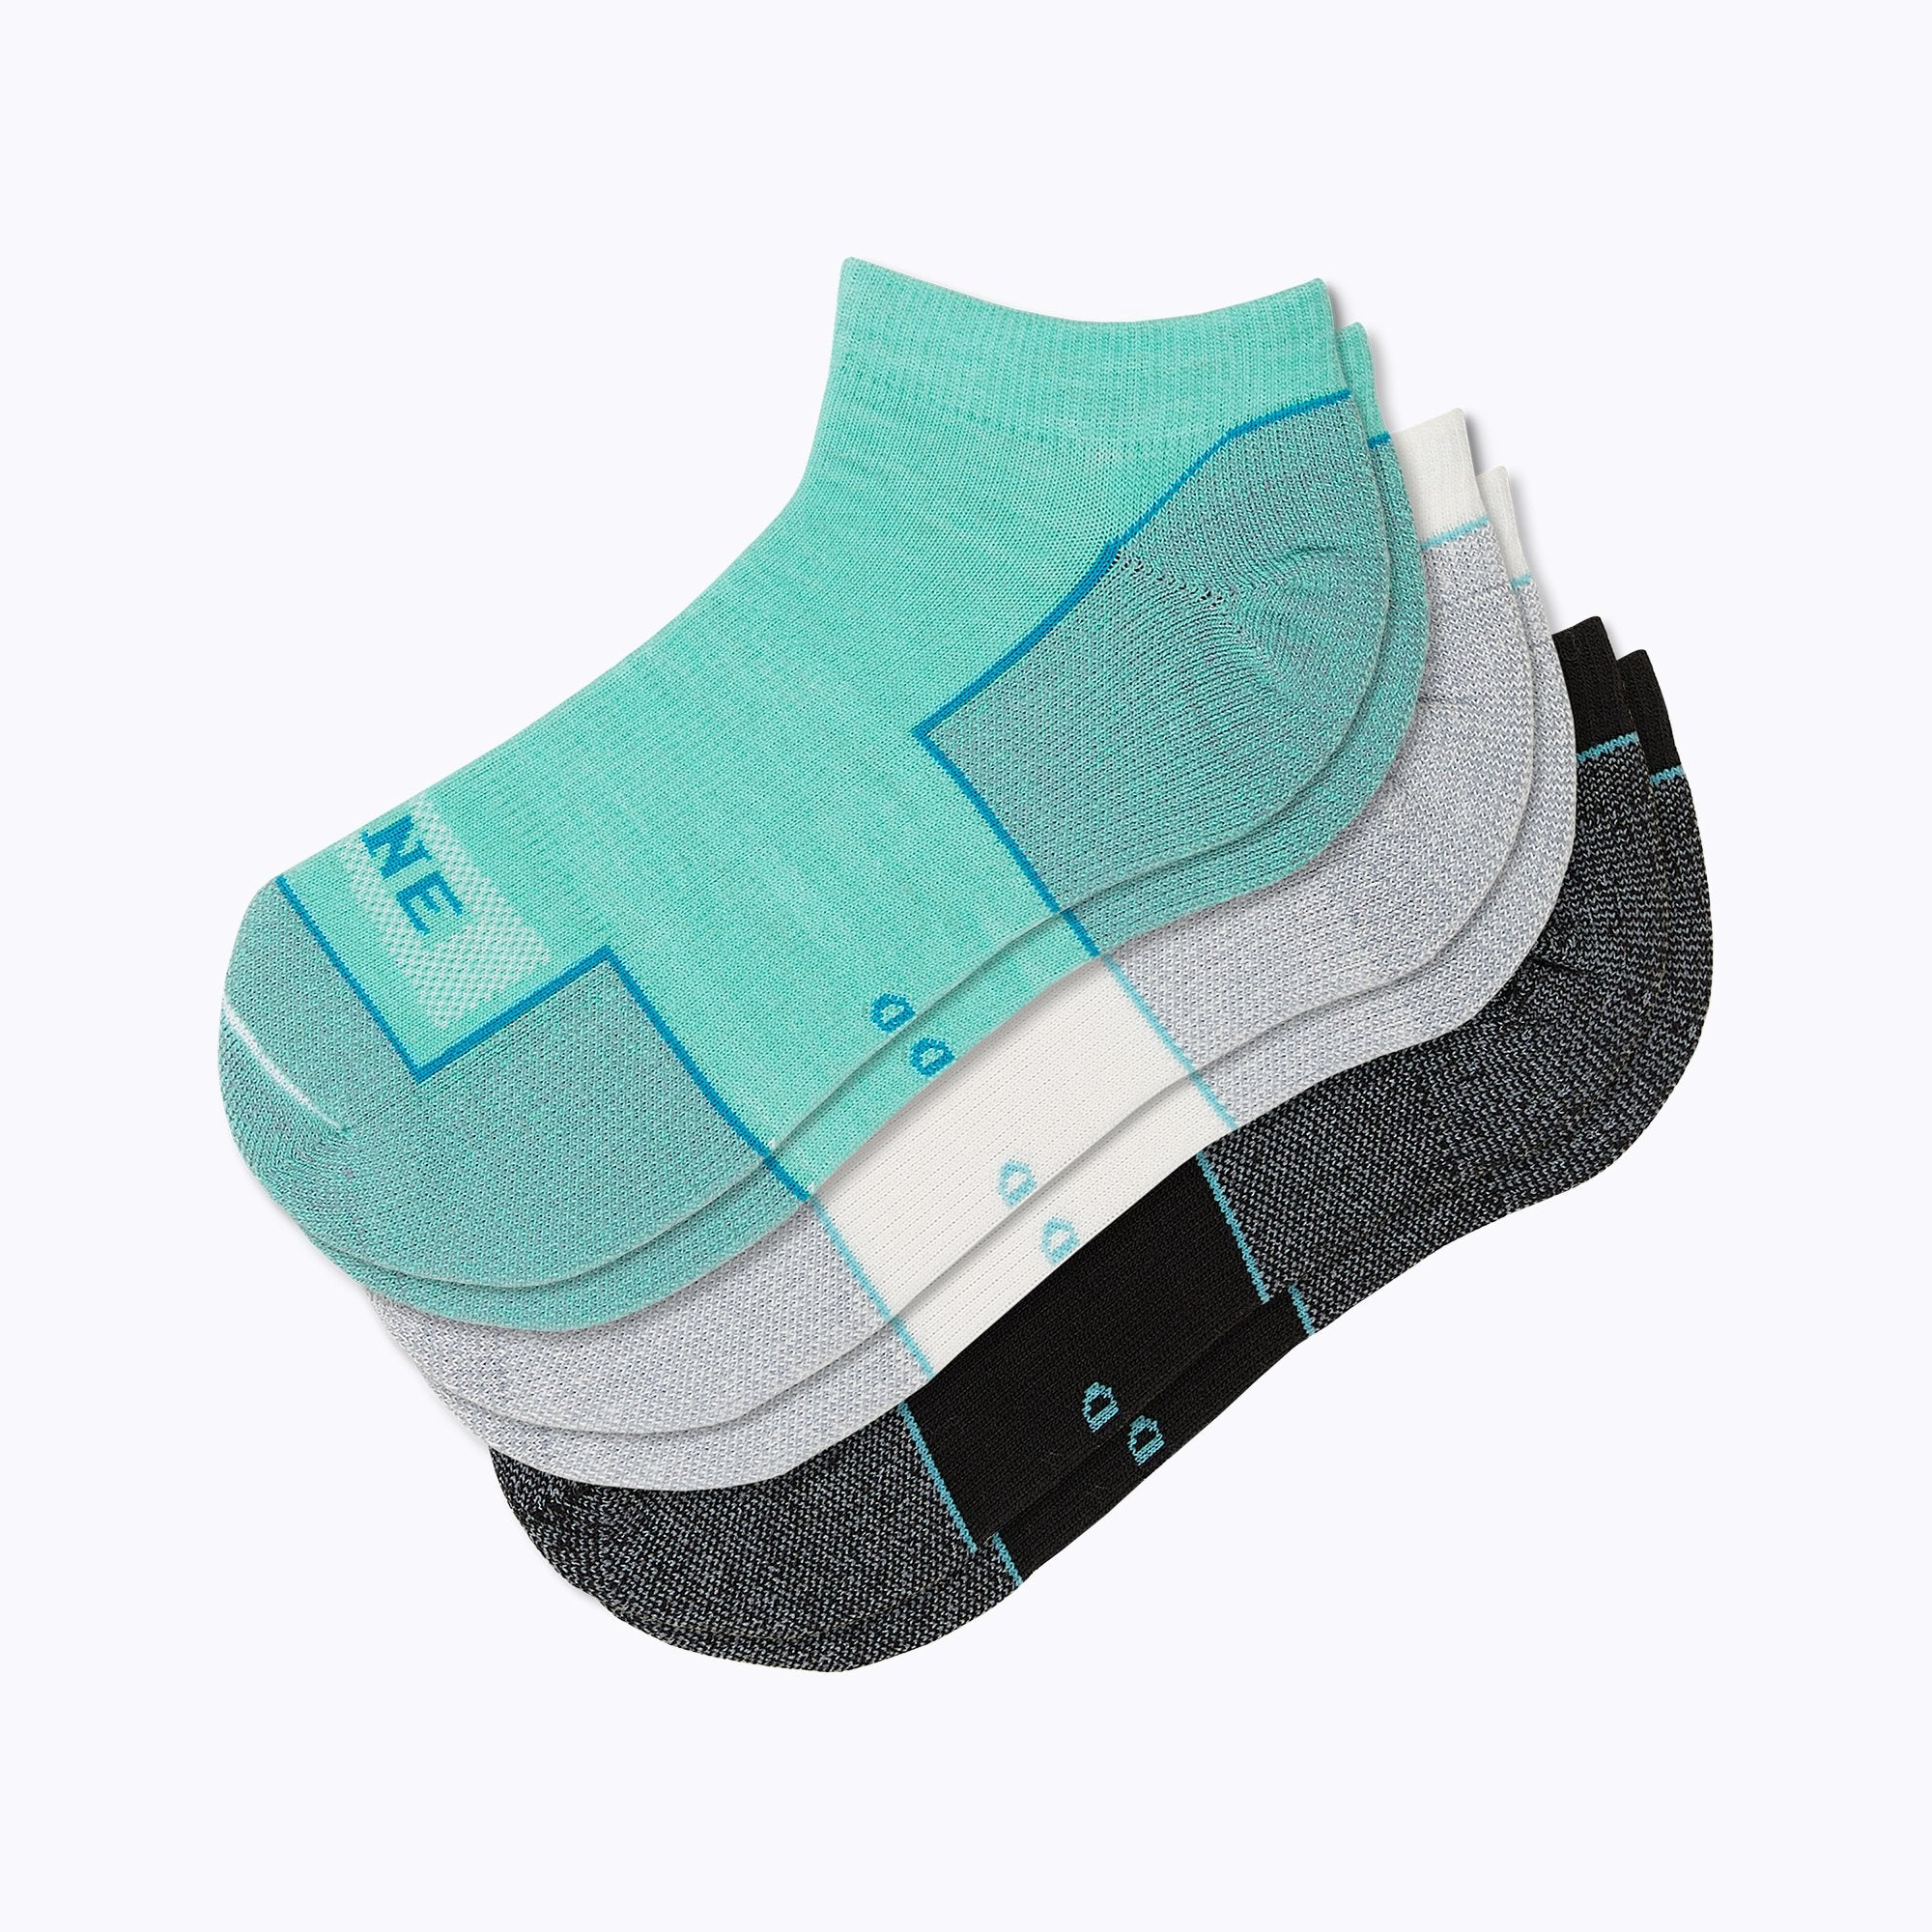 Everyday 3 Pack Mix Women's Ankle Socks - Mix by Canyon x Lane Socks